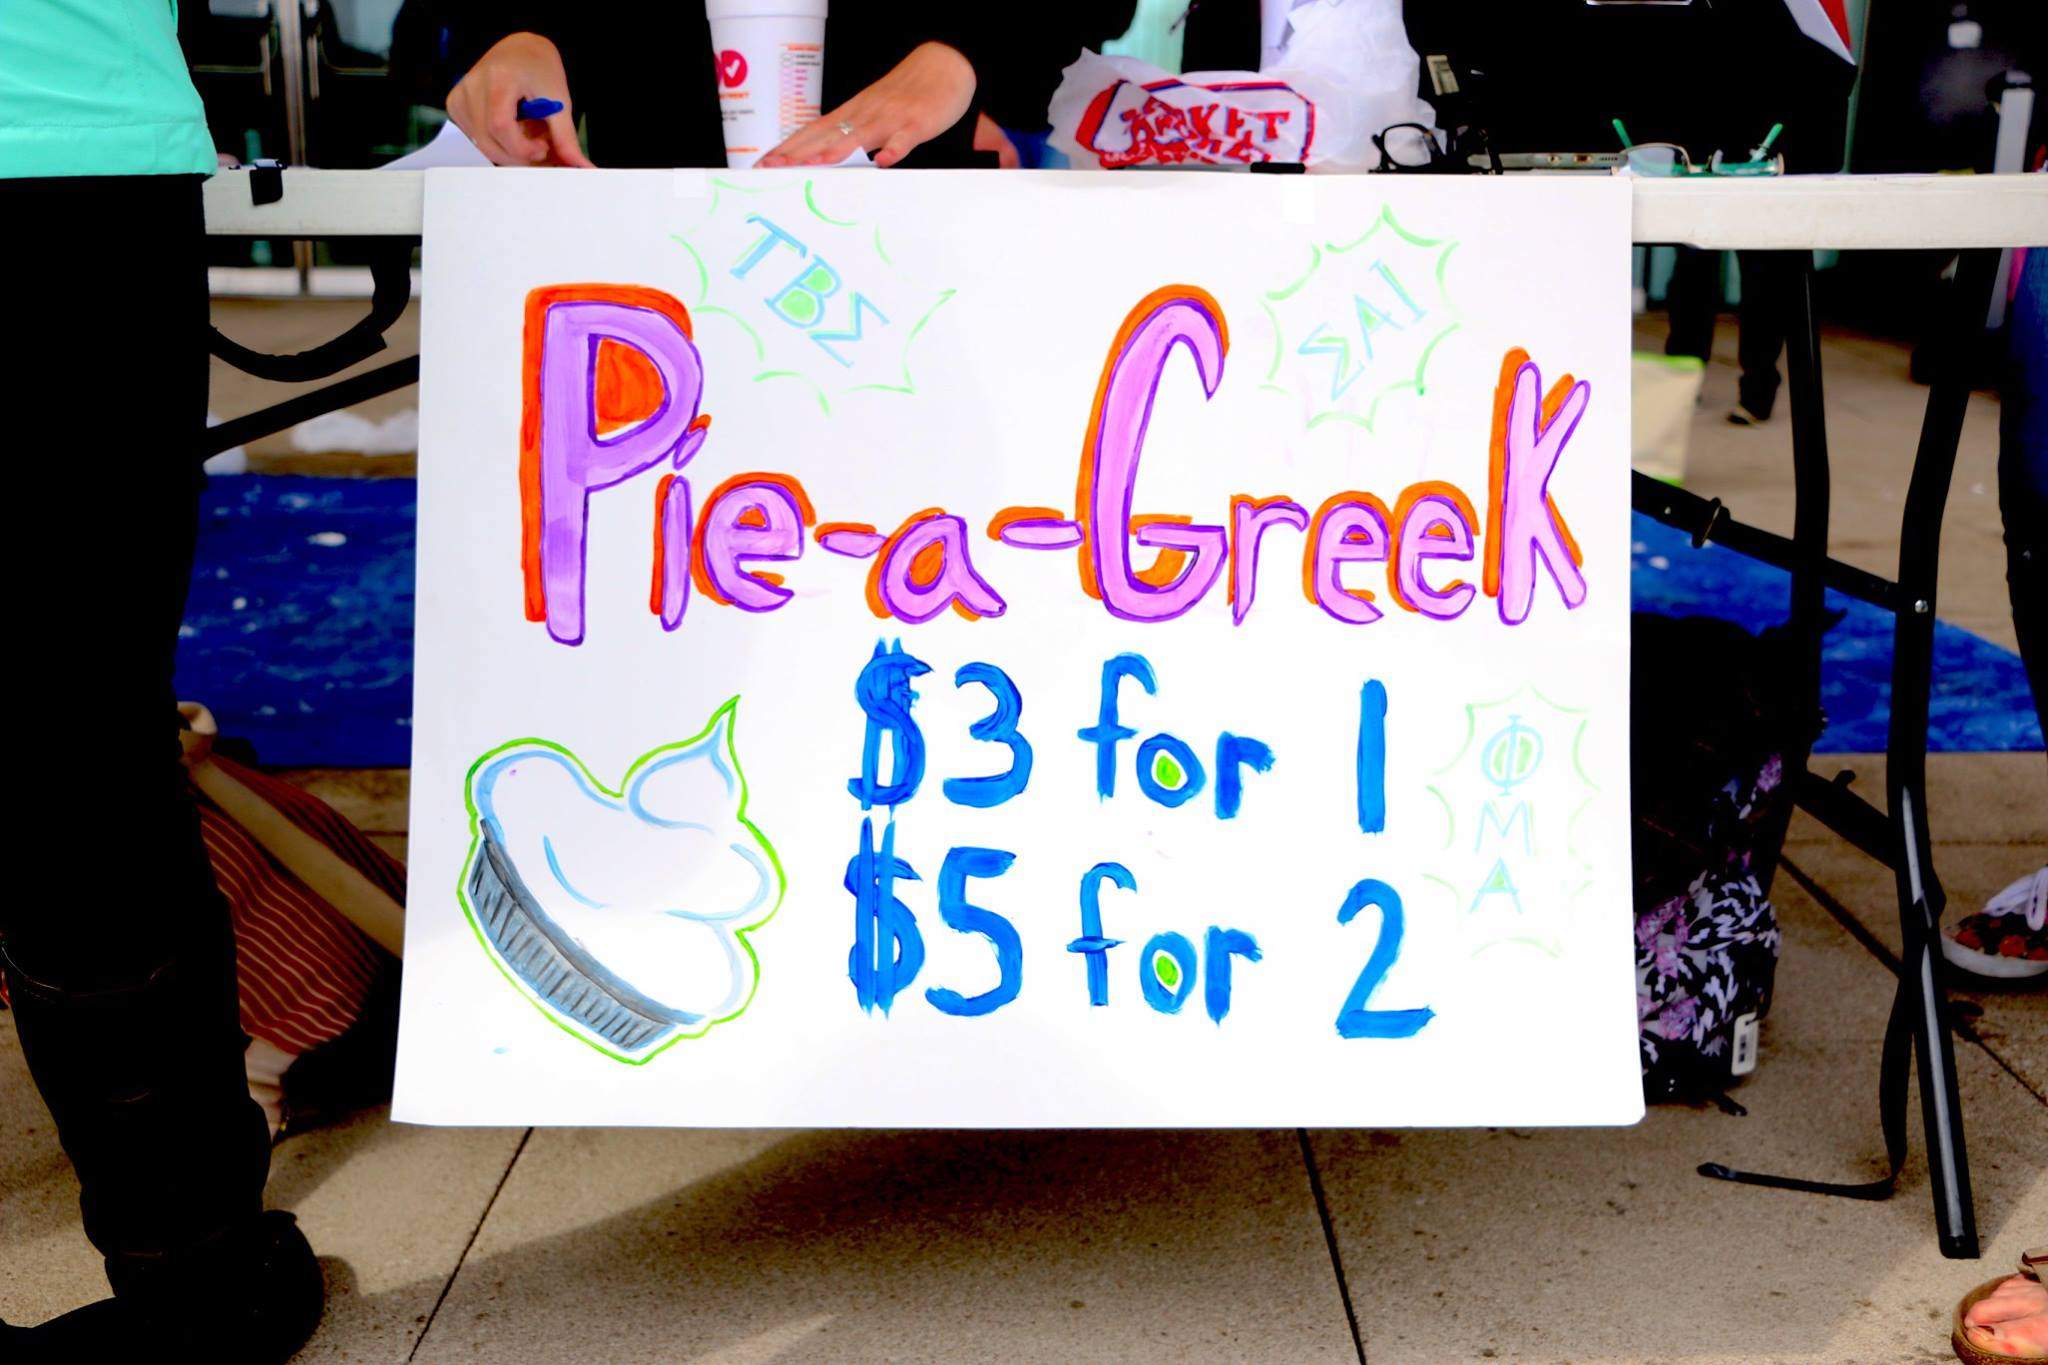 Pie-a-Greek Fundraiser - April 2, 2016